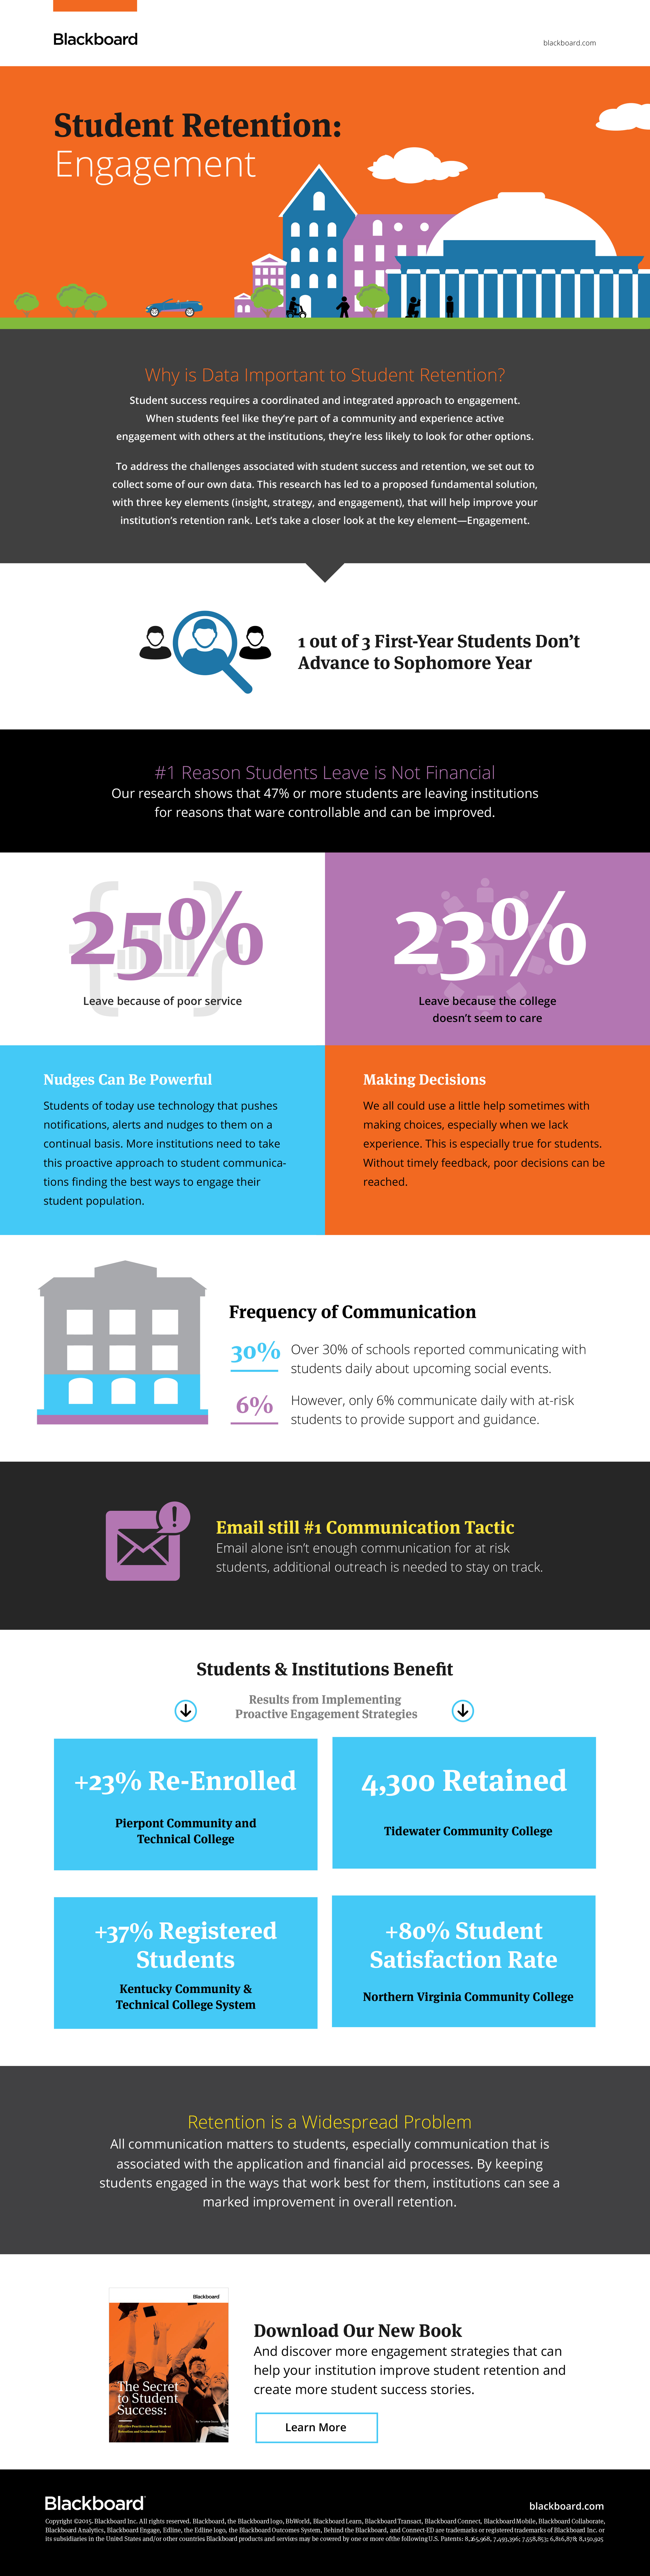 Infographic on student retention engagement